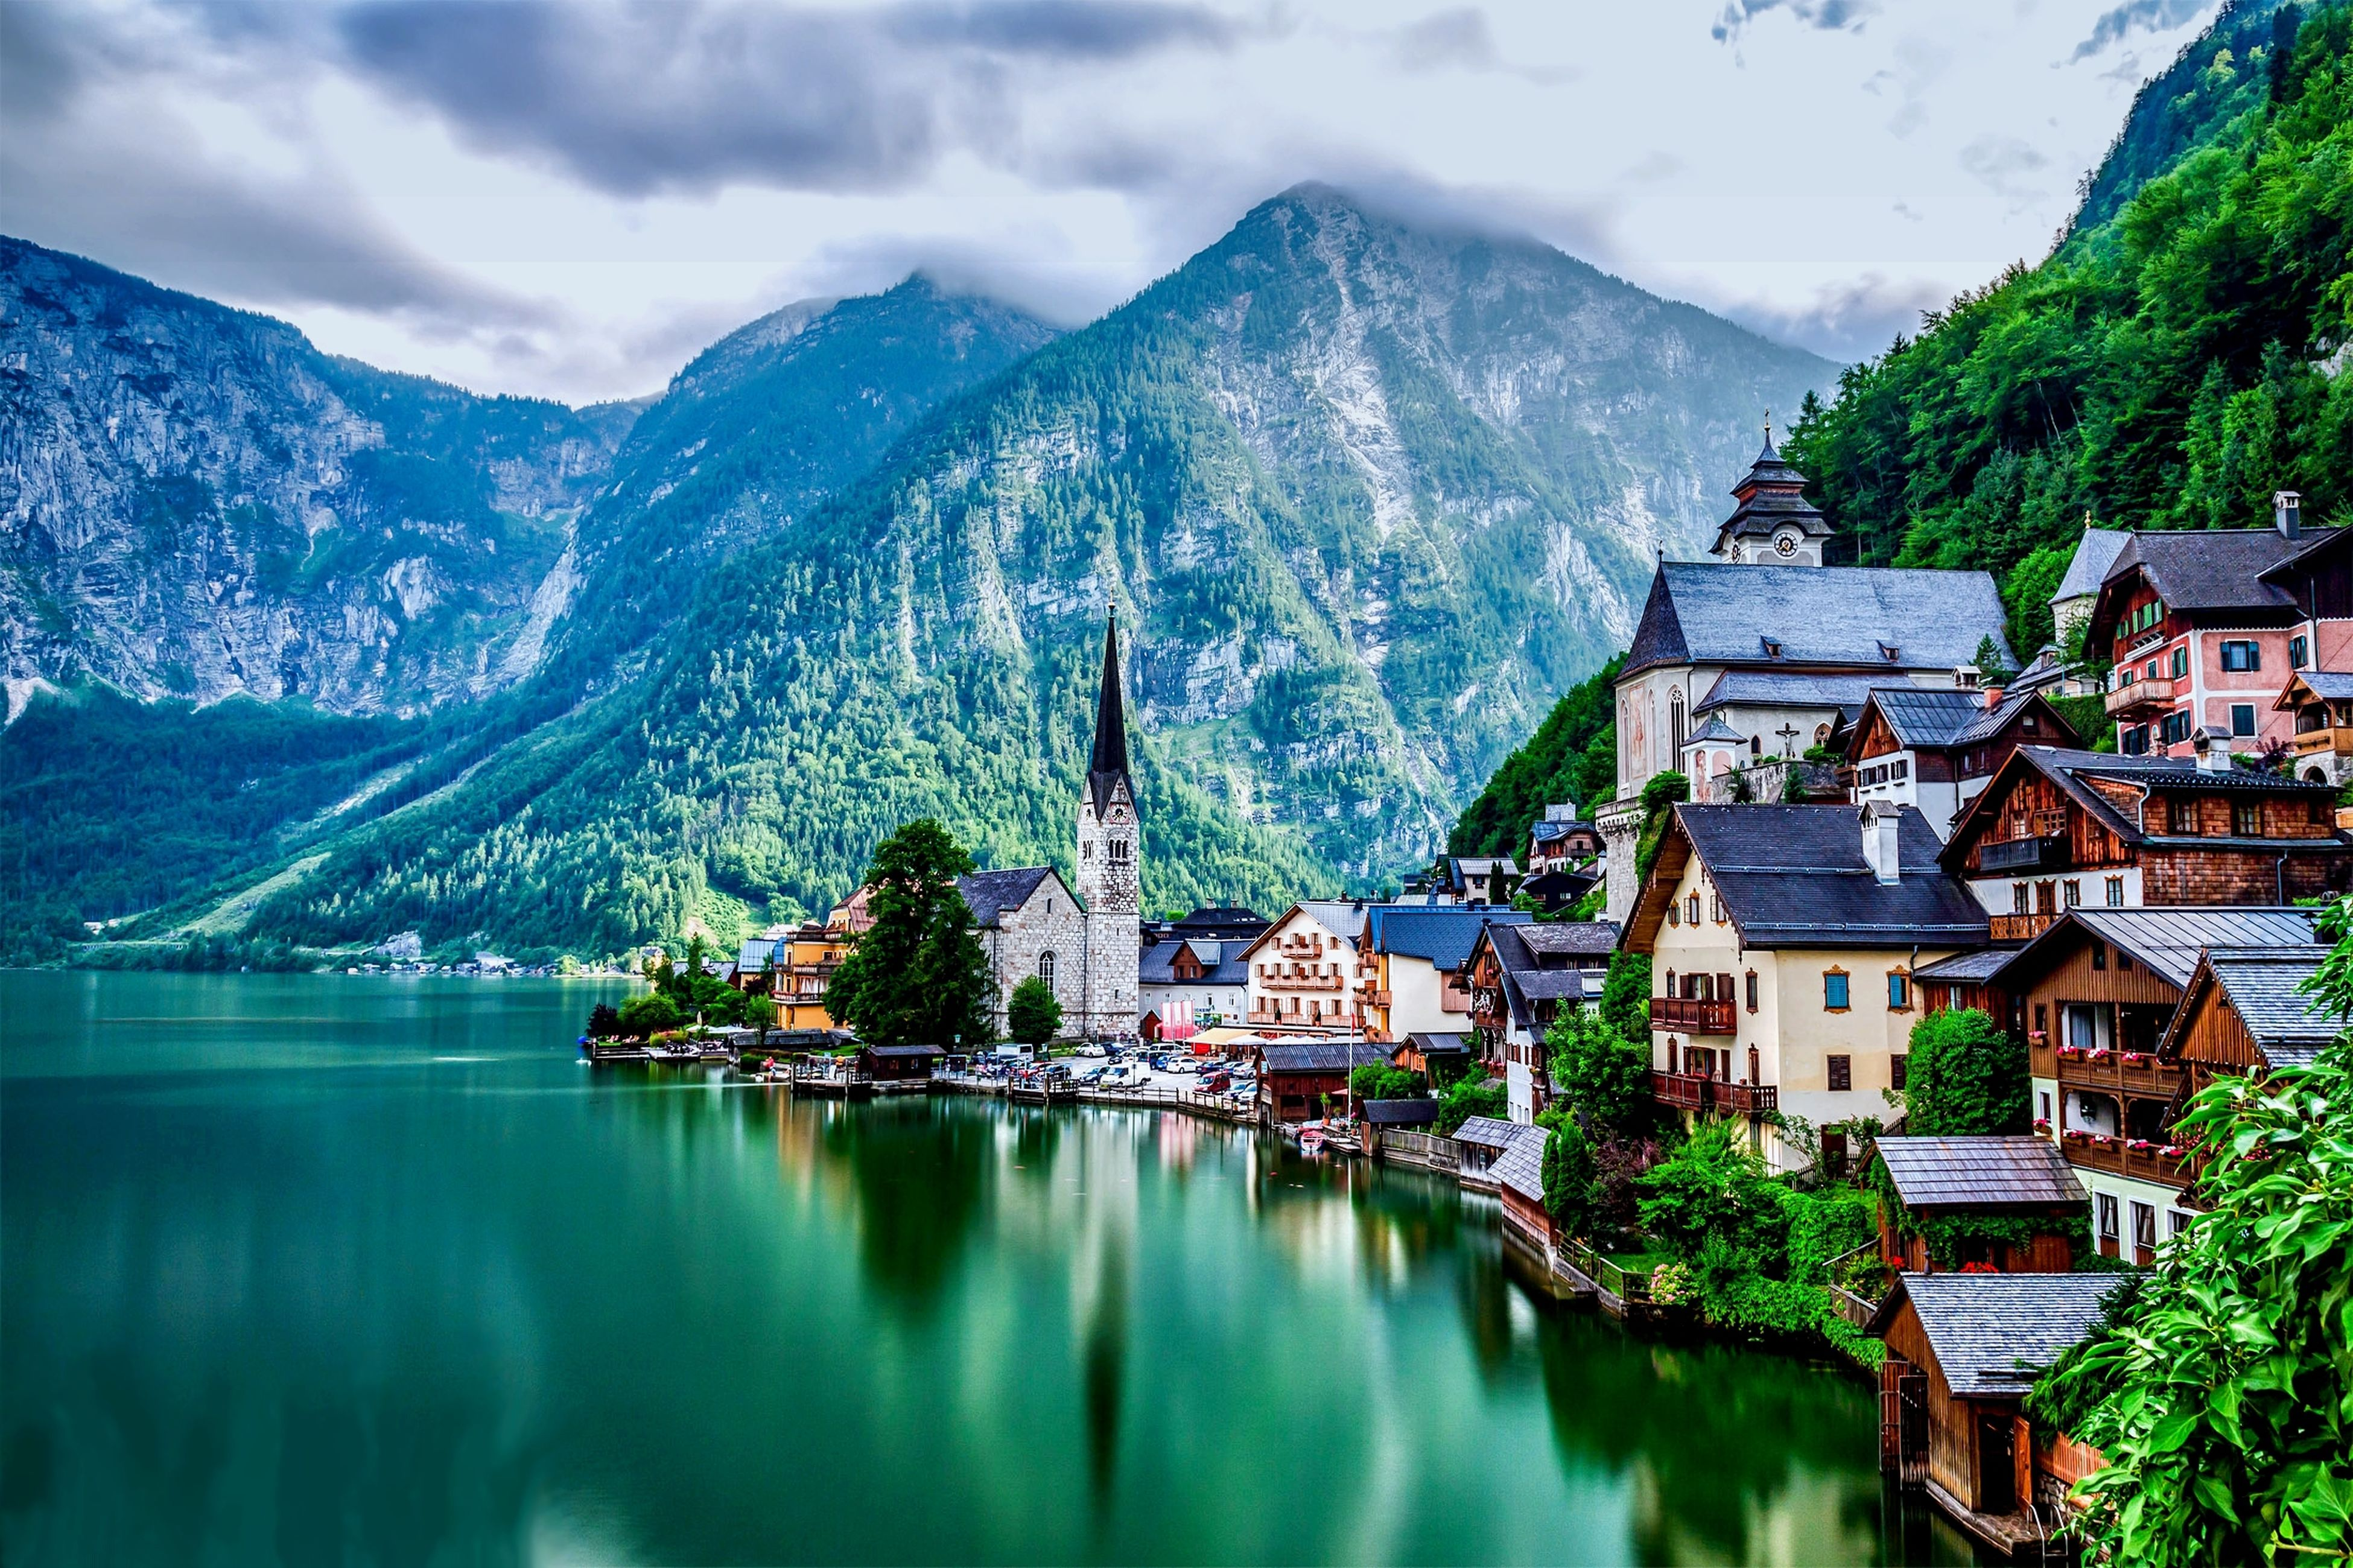 mountain, water, mountain range, building exterior, waterfront, lake, architecture, built structure, tree, reflection, house, sky, scenics, tranquil scene, tranquility, beauty in nature, nature, river, town, residential structure